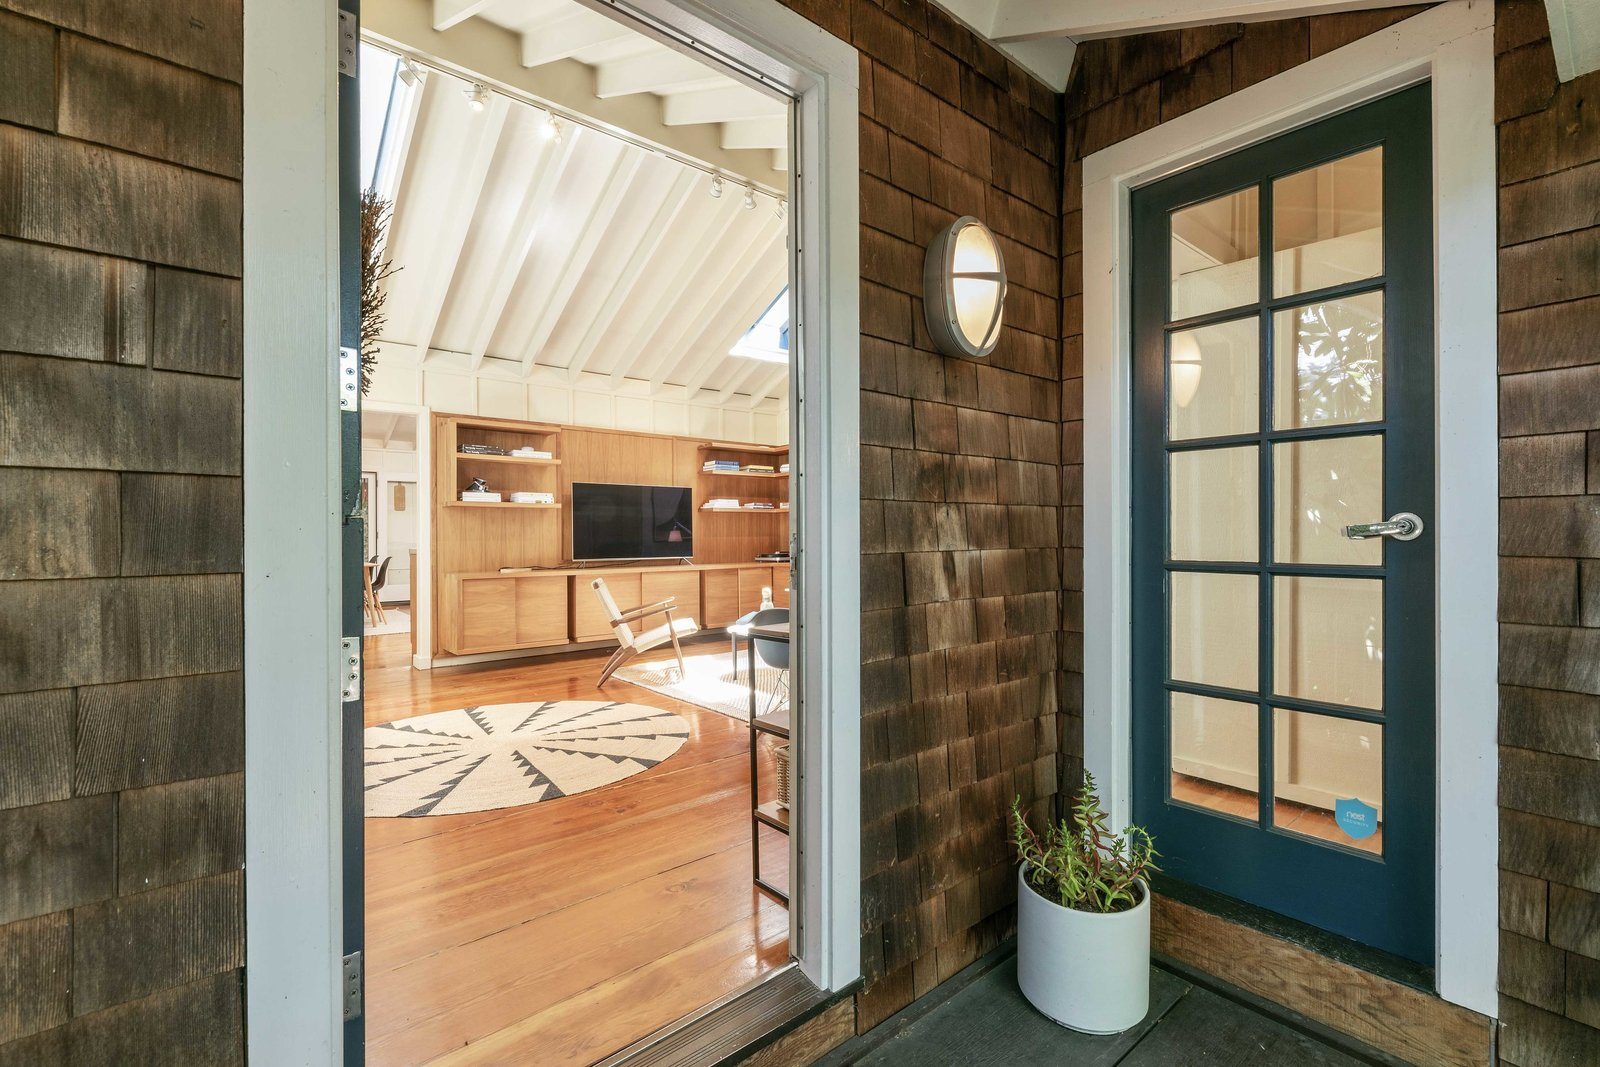 """A Dutch-style door opens from the front porch and leads directly into the sunlit living area. The wood-clad home is located along <span style=""""font-family: Theinhardt, -apple-system, BlinkMacSystemFont, &quot;Segoe UI&quot;, Roboto, Oxygen-Sans, Ubuntu, Cantarell, &quot;Helvetica Neue&quot;, sans-serif;"""">Arkansas Street and just around the block from Potrero Hill's popular 18th Street corridor of cafes and shops.</span>  Photo 1 of 13 in An Idyllic Cottage With a Garden Studio Seeks $1.8M in San Francisco"""